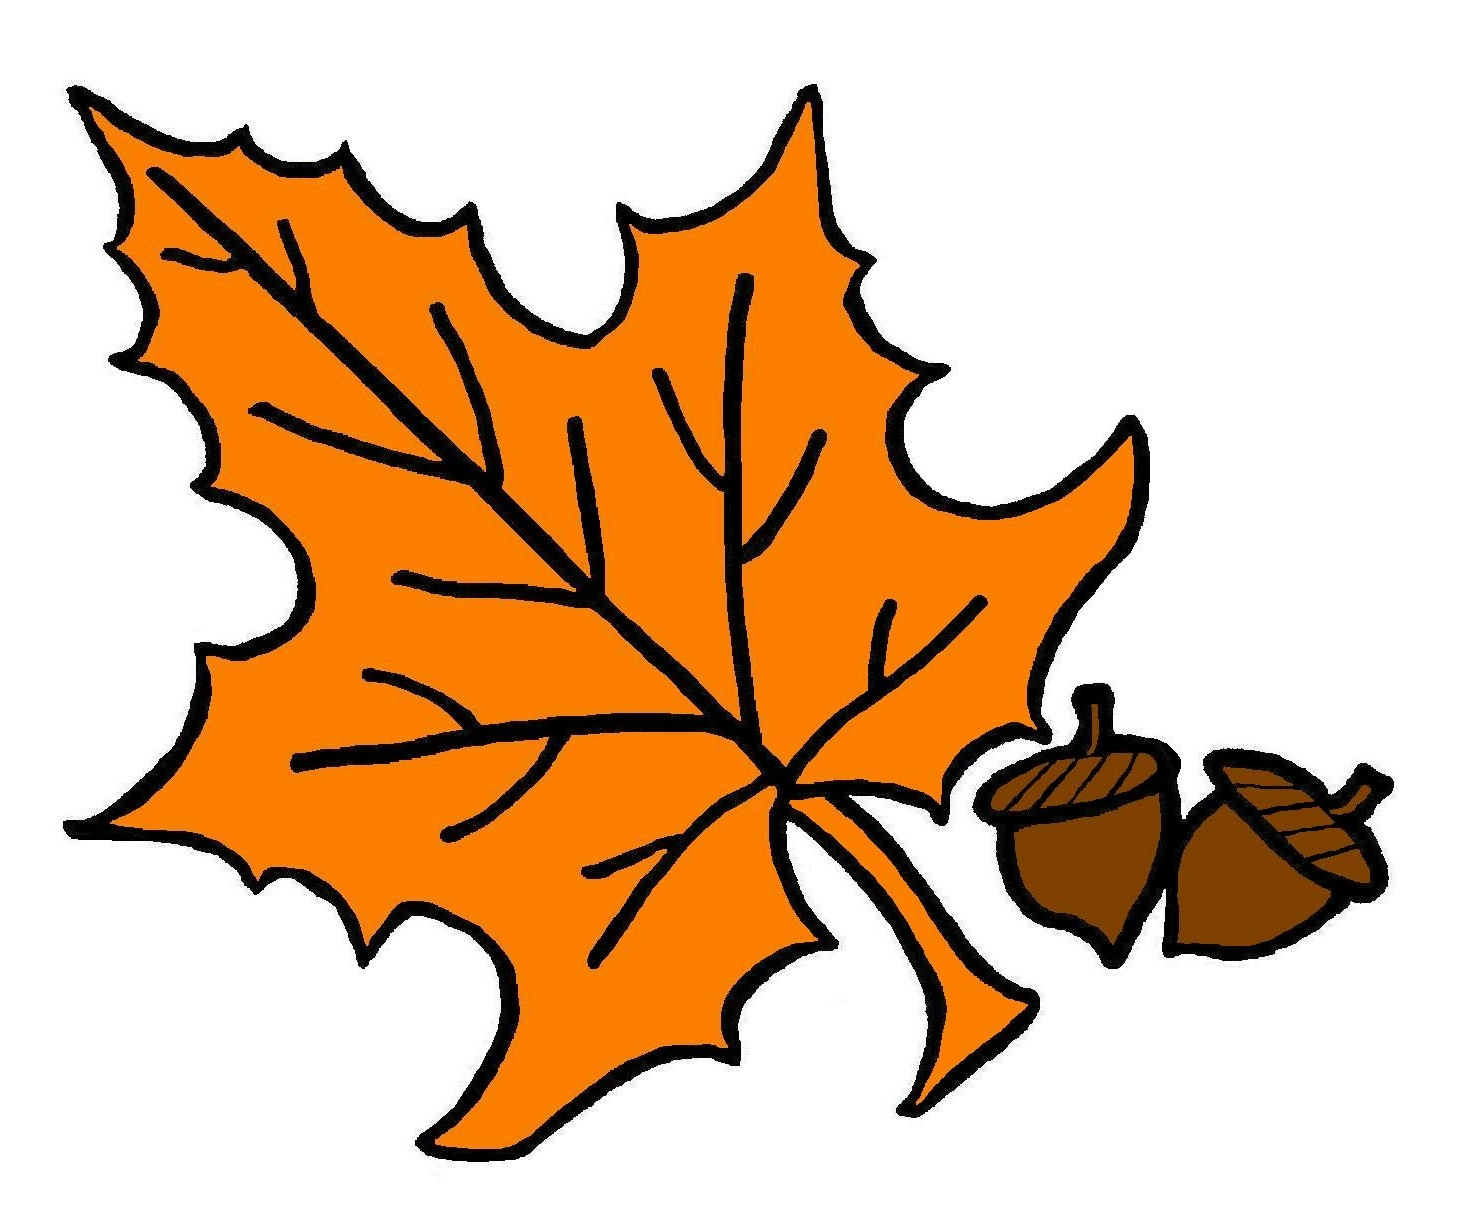 hight resolution of 1457x1222 fall leaves top autumn tree clip art free clipart image